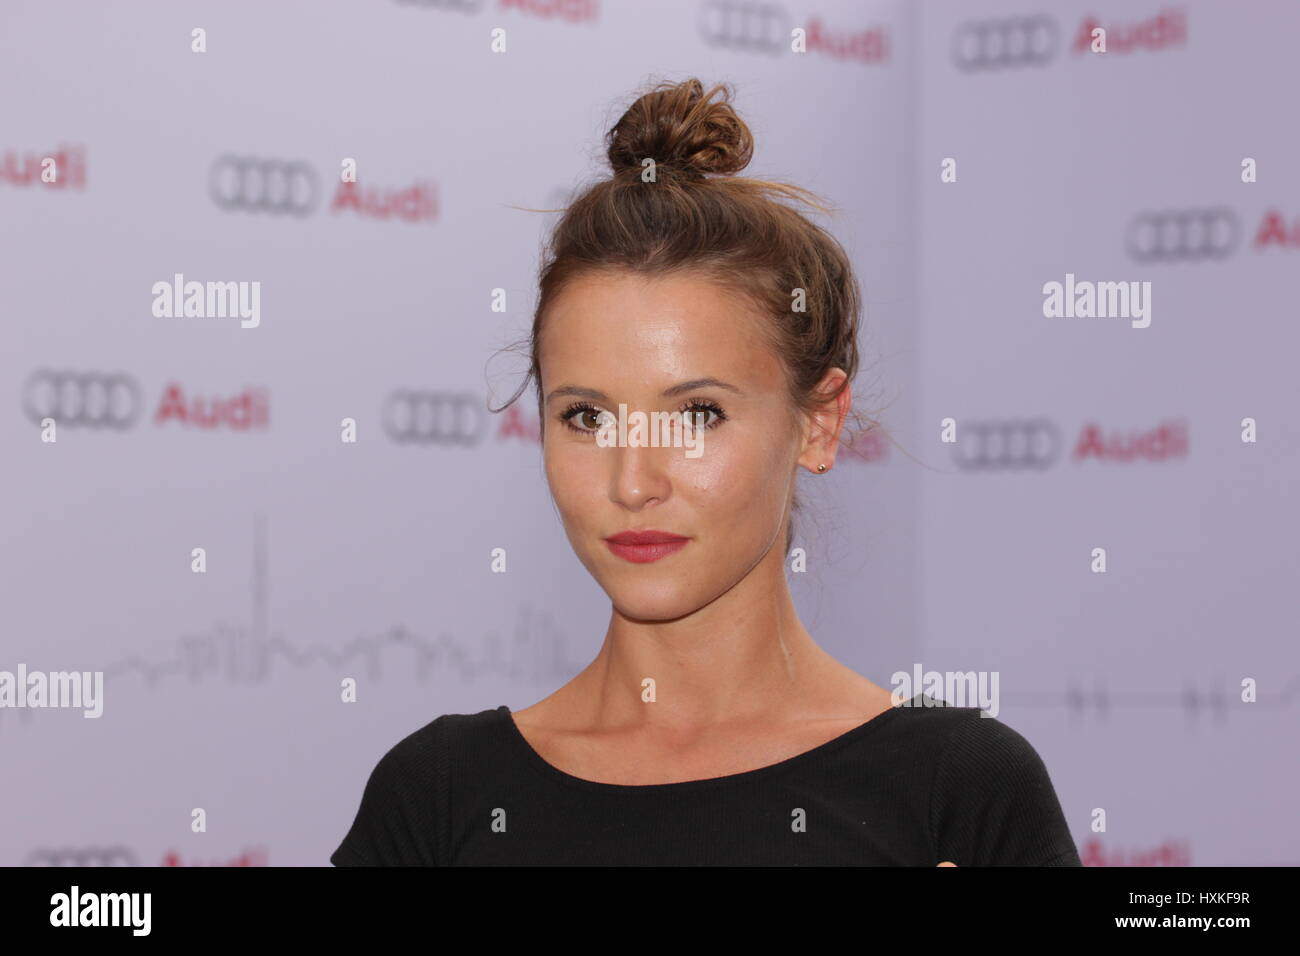 Berlin, Germany, August 13th, 2014: Red carpet arrivals for Audi Classic Open  Air. - Stock Image